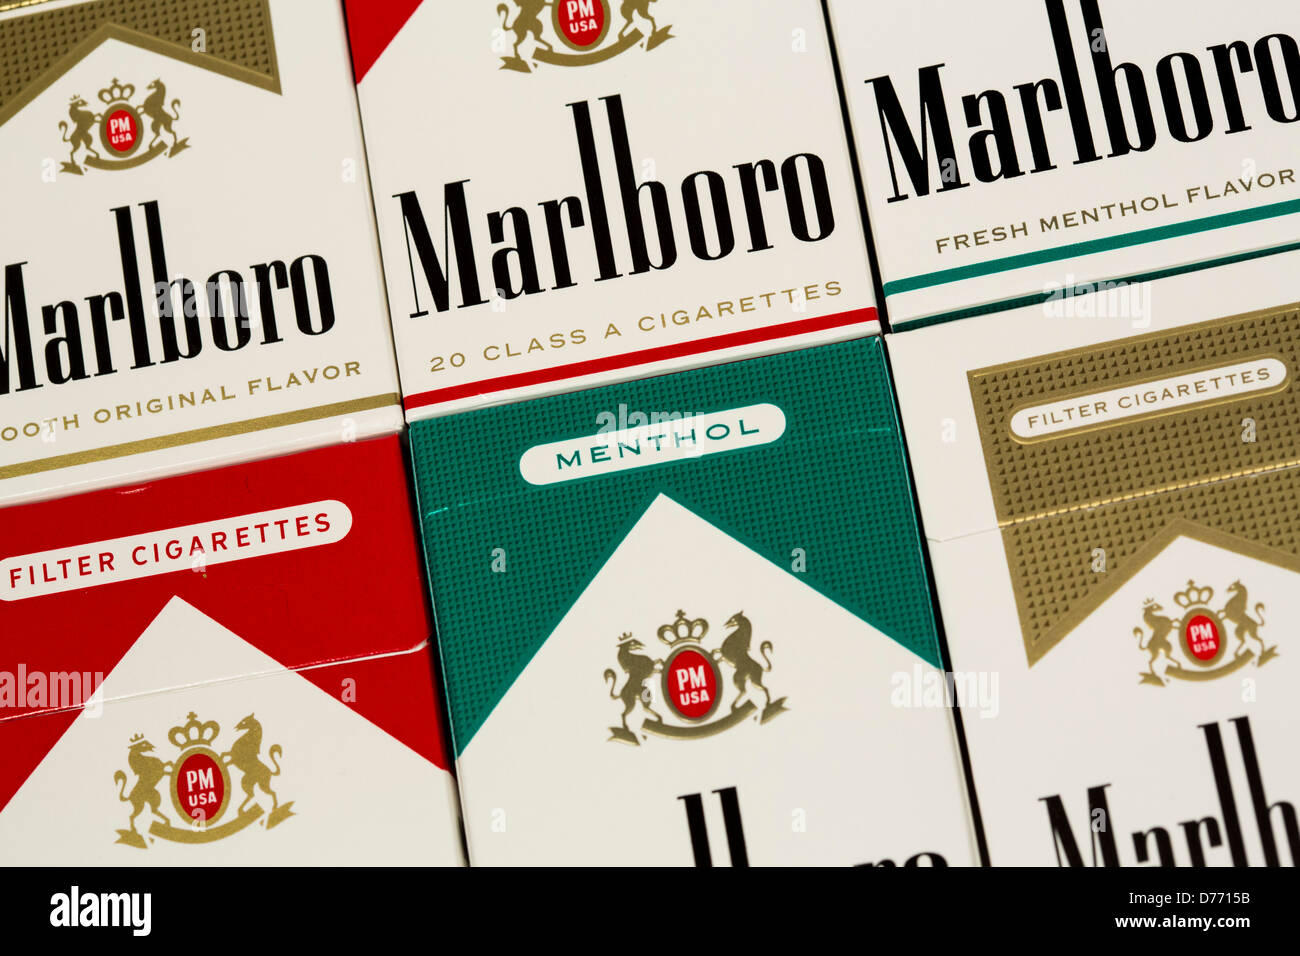 Philip Morris Cigarettes Stock Photos & Philip Morris